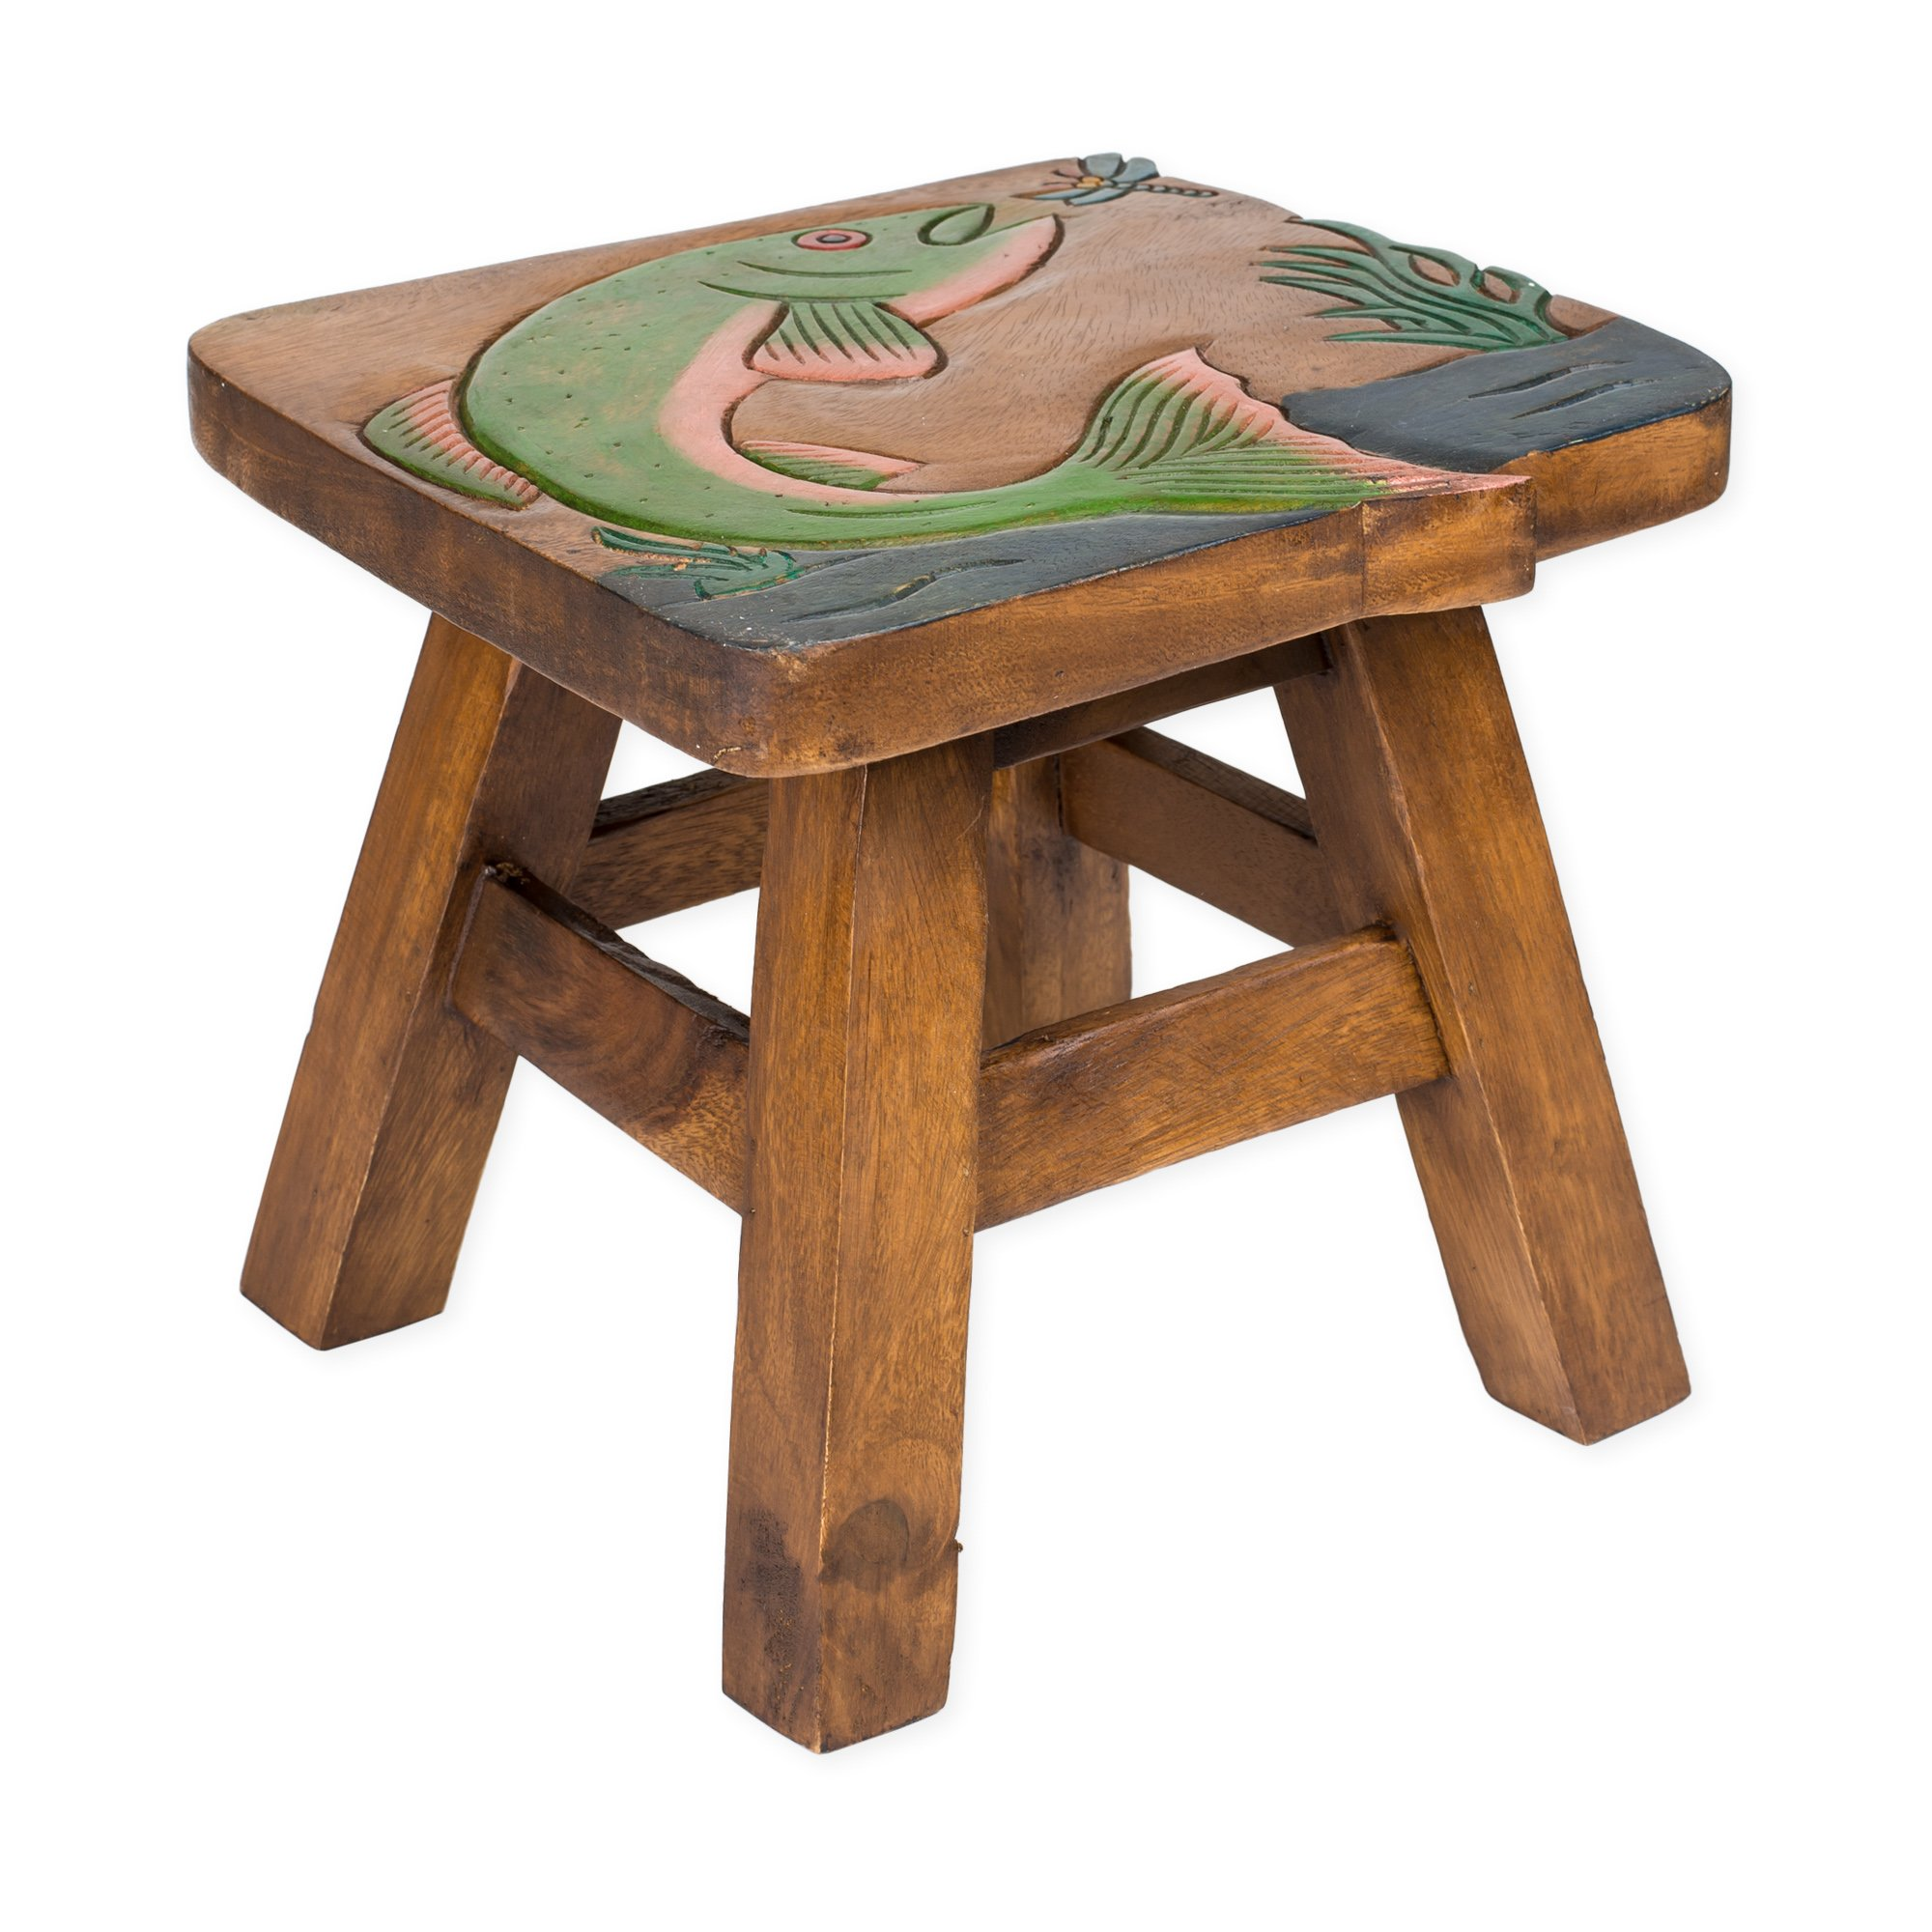 Jumping Trout Design Hand Carved Acacia Hardwood Decorative Short Stool